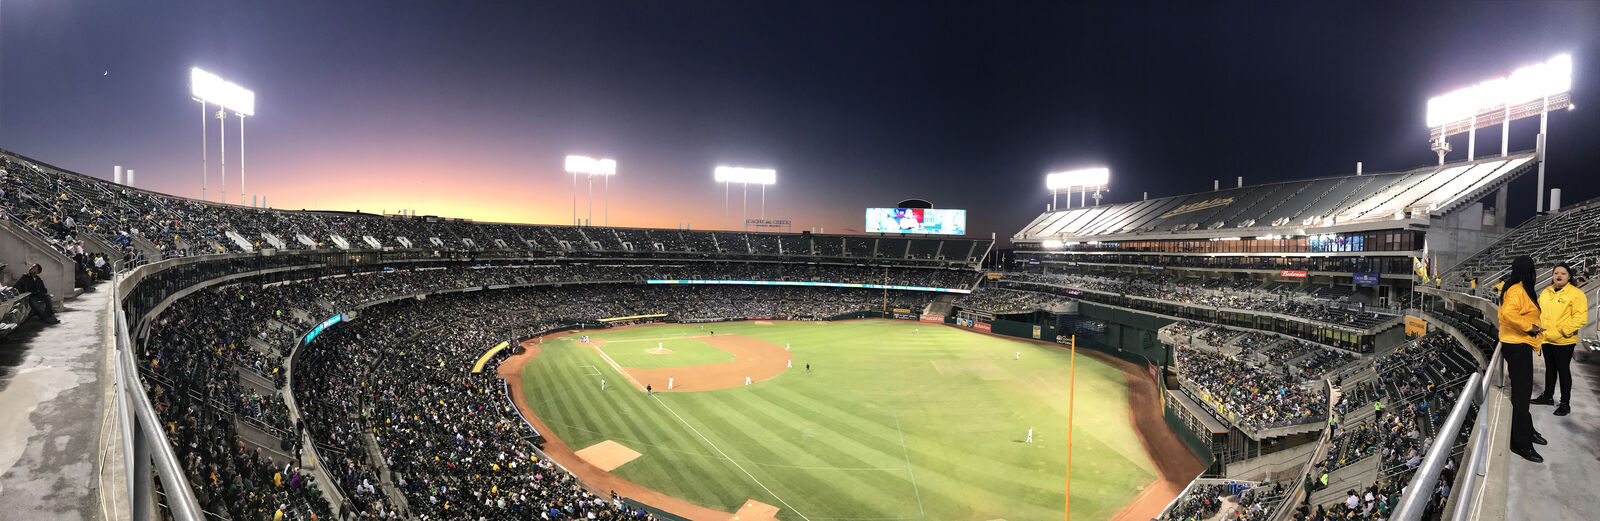 Houston Astros at Oakland Athletics